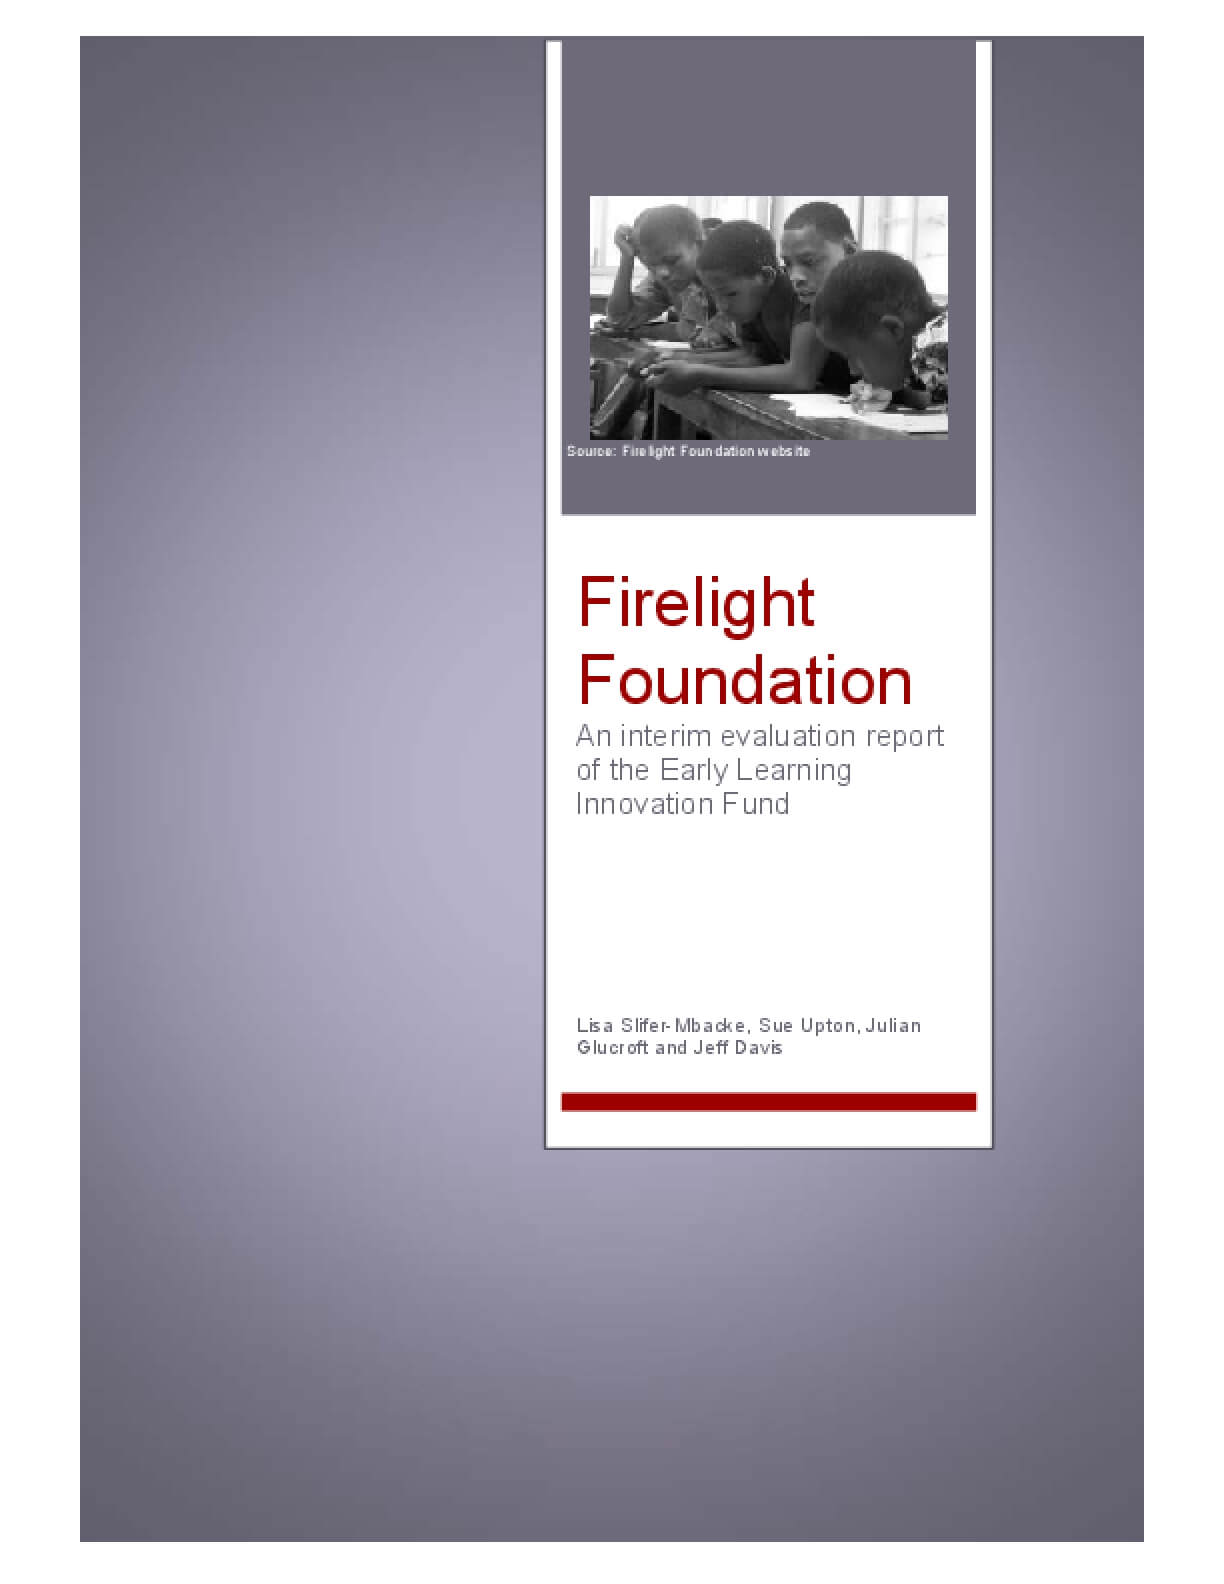 Firelight Foundation: An interim evaluation report of the Early Learning Innovation Fund